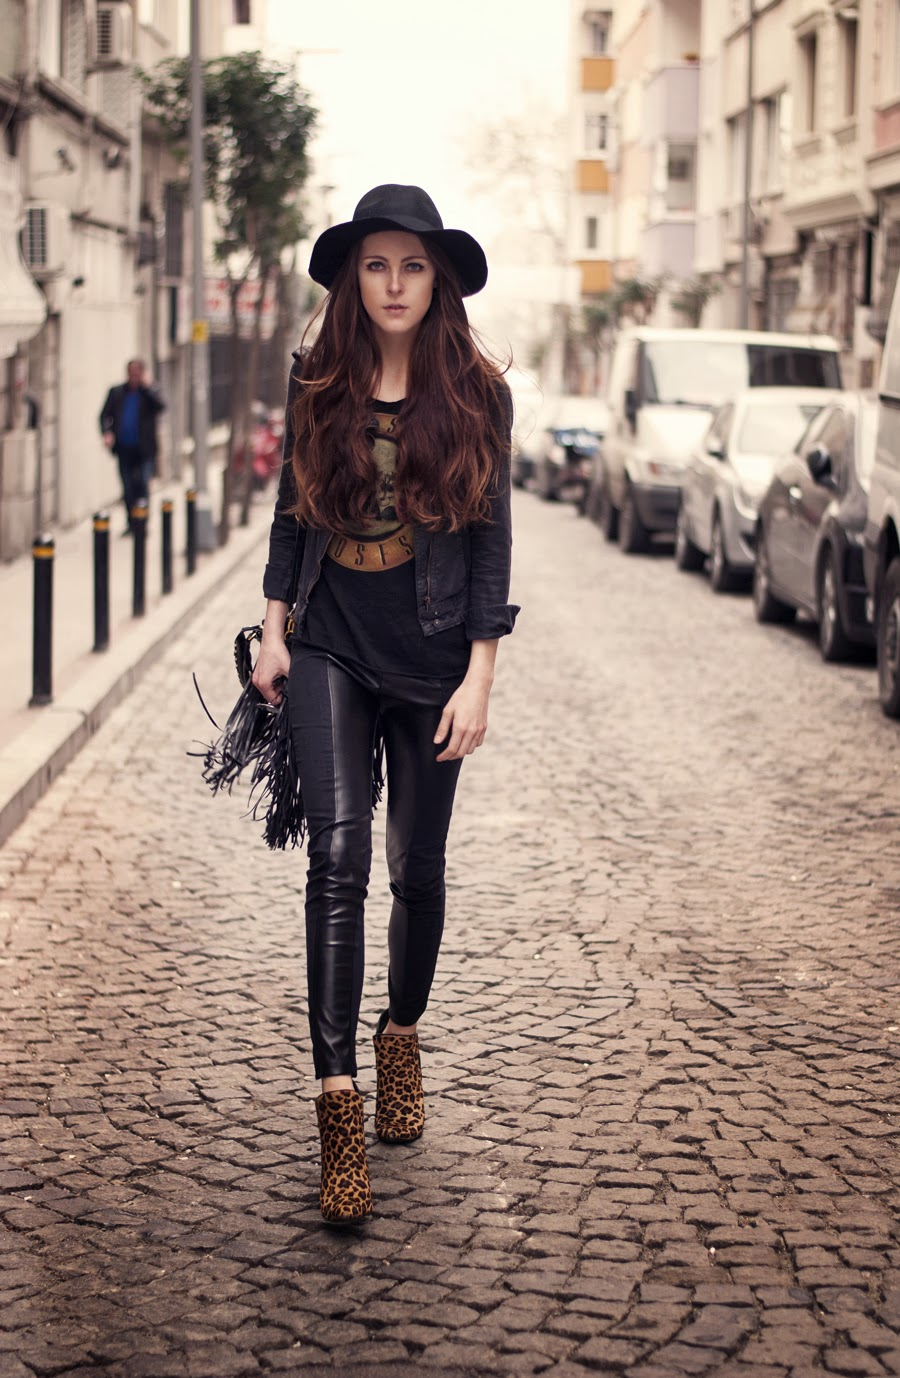 rocker outfit , street style, guns and rose top, fedora hat outfit, istanbul blogger, russian blogger, fashion details, long hair, neonrock